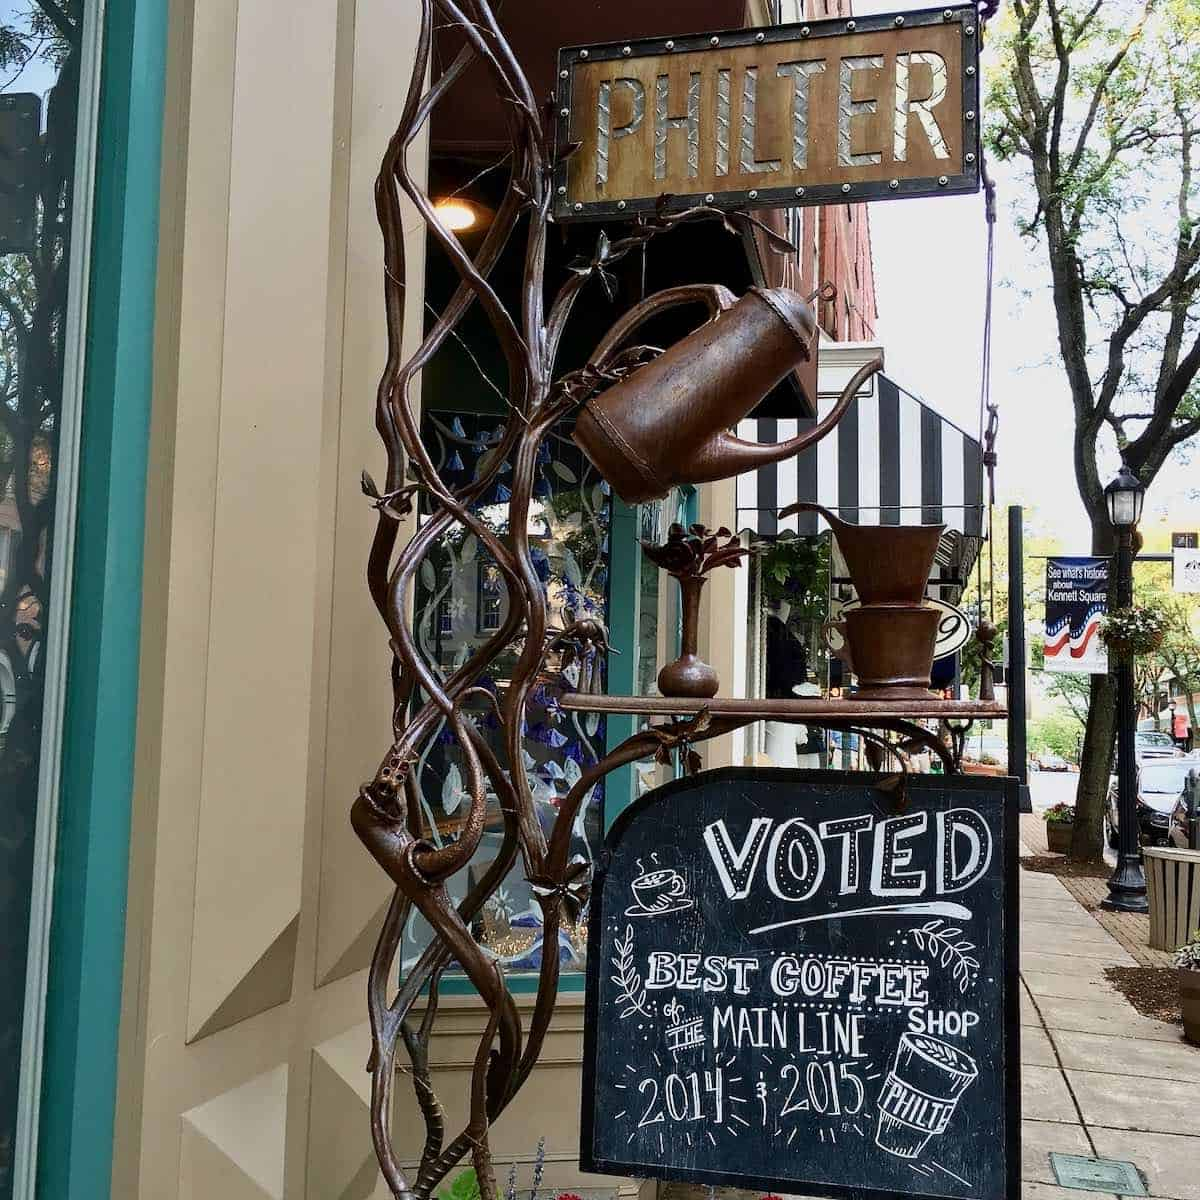 Philter coffee shop sign